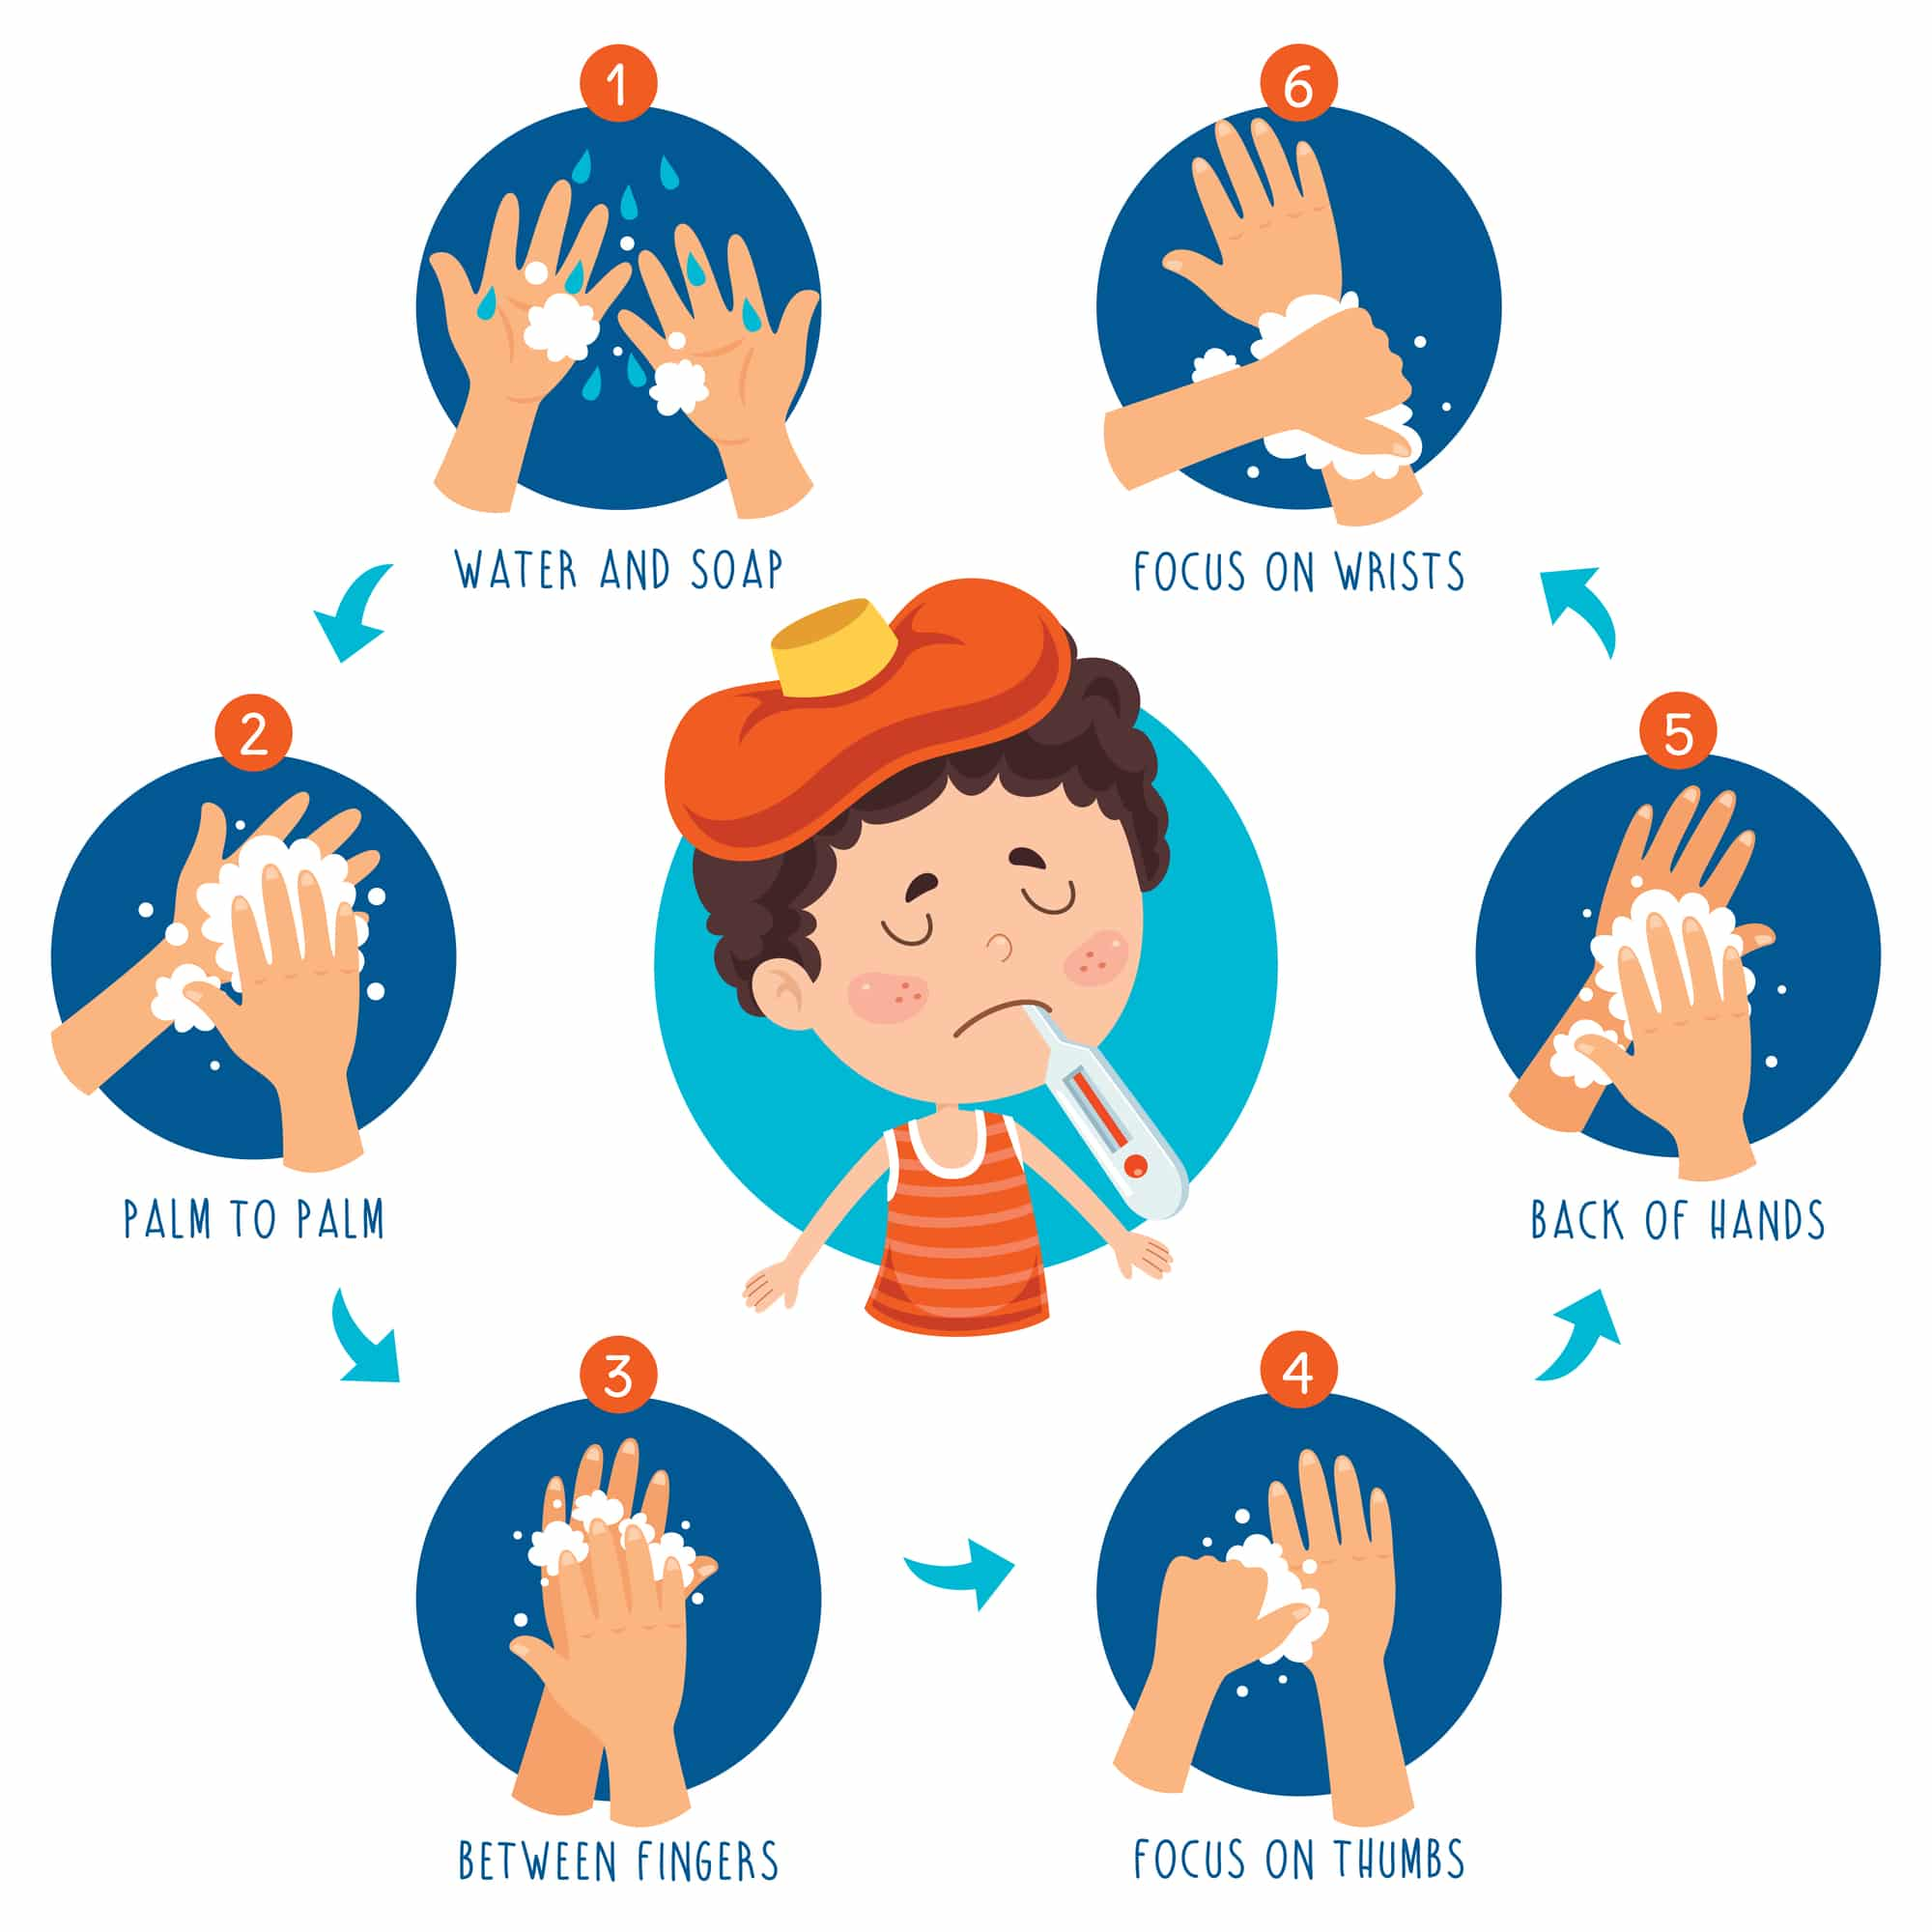 a guide to washing your hands to prevent the spread of the flu. Use water and soap. Start palm to palm, then focus between your fingers, your thumbs, the back of your hands, and your wrists